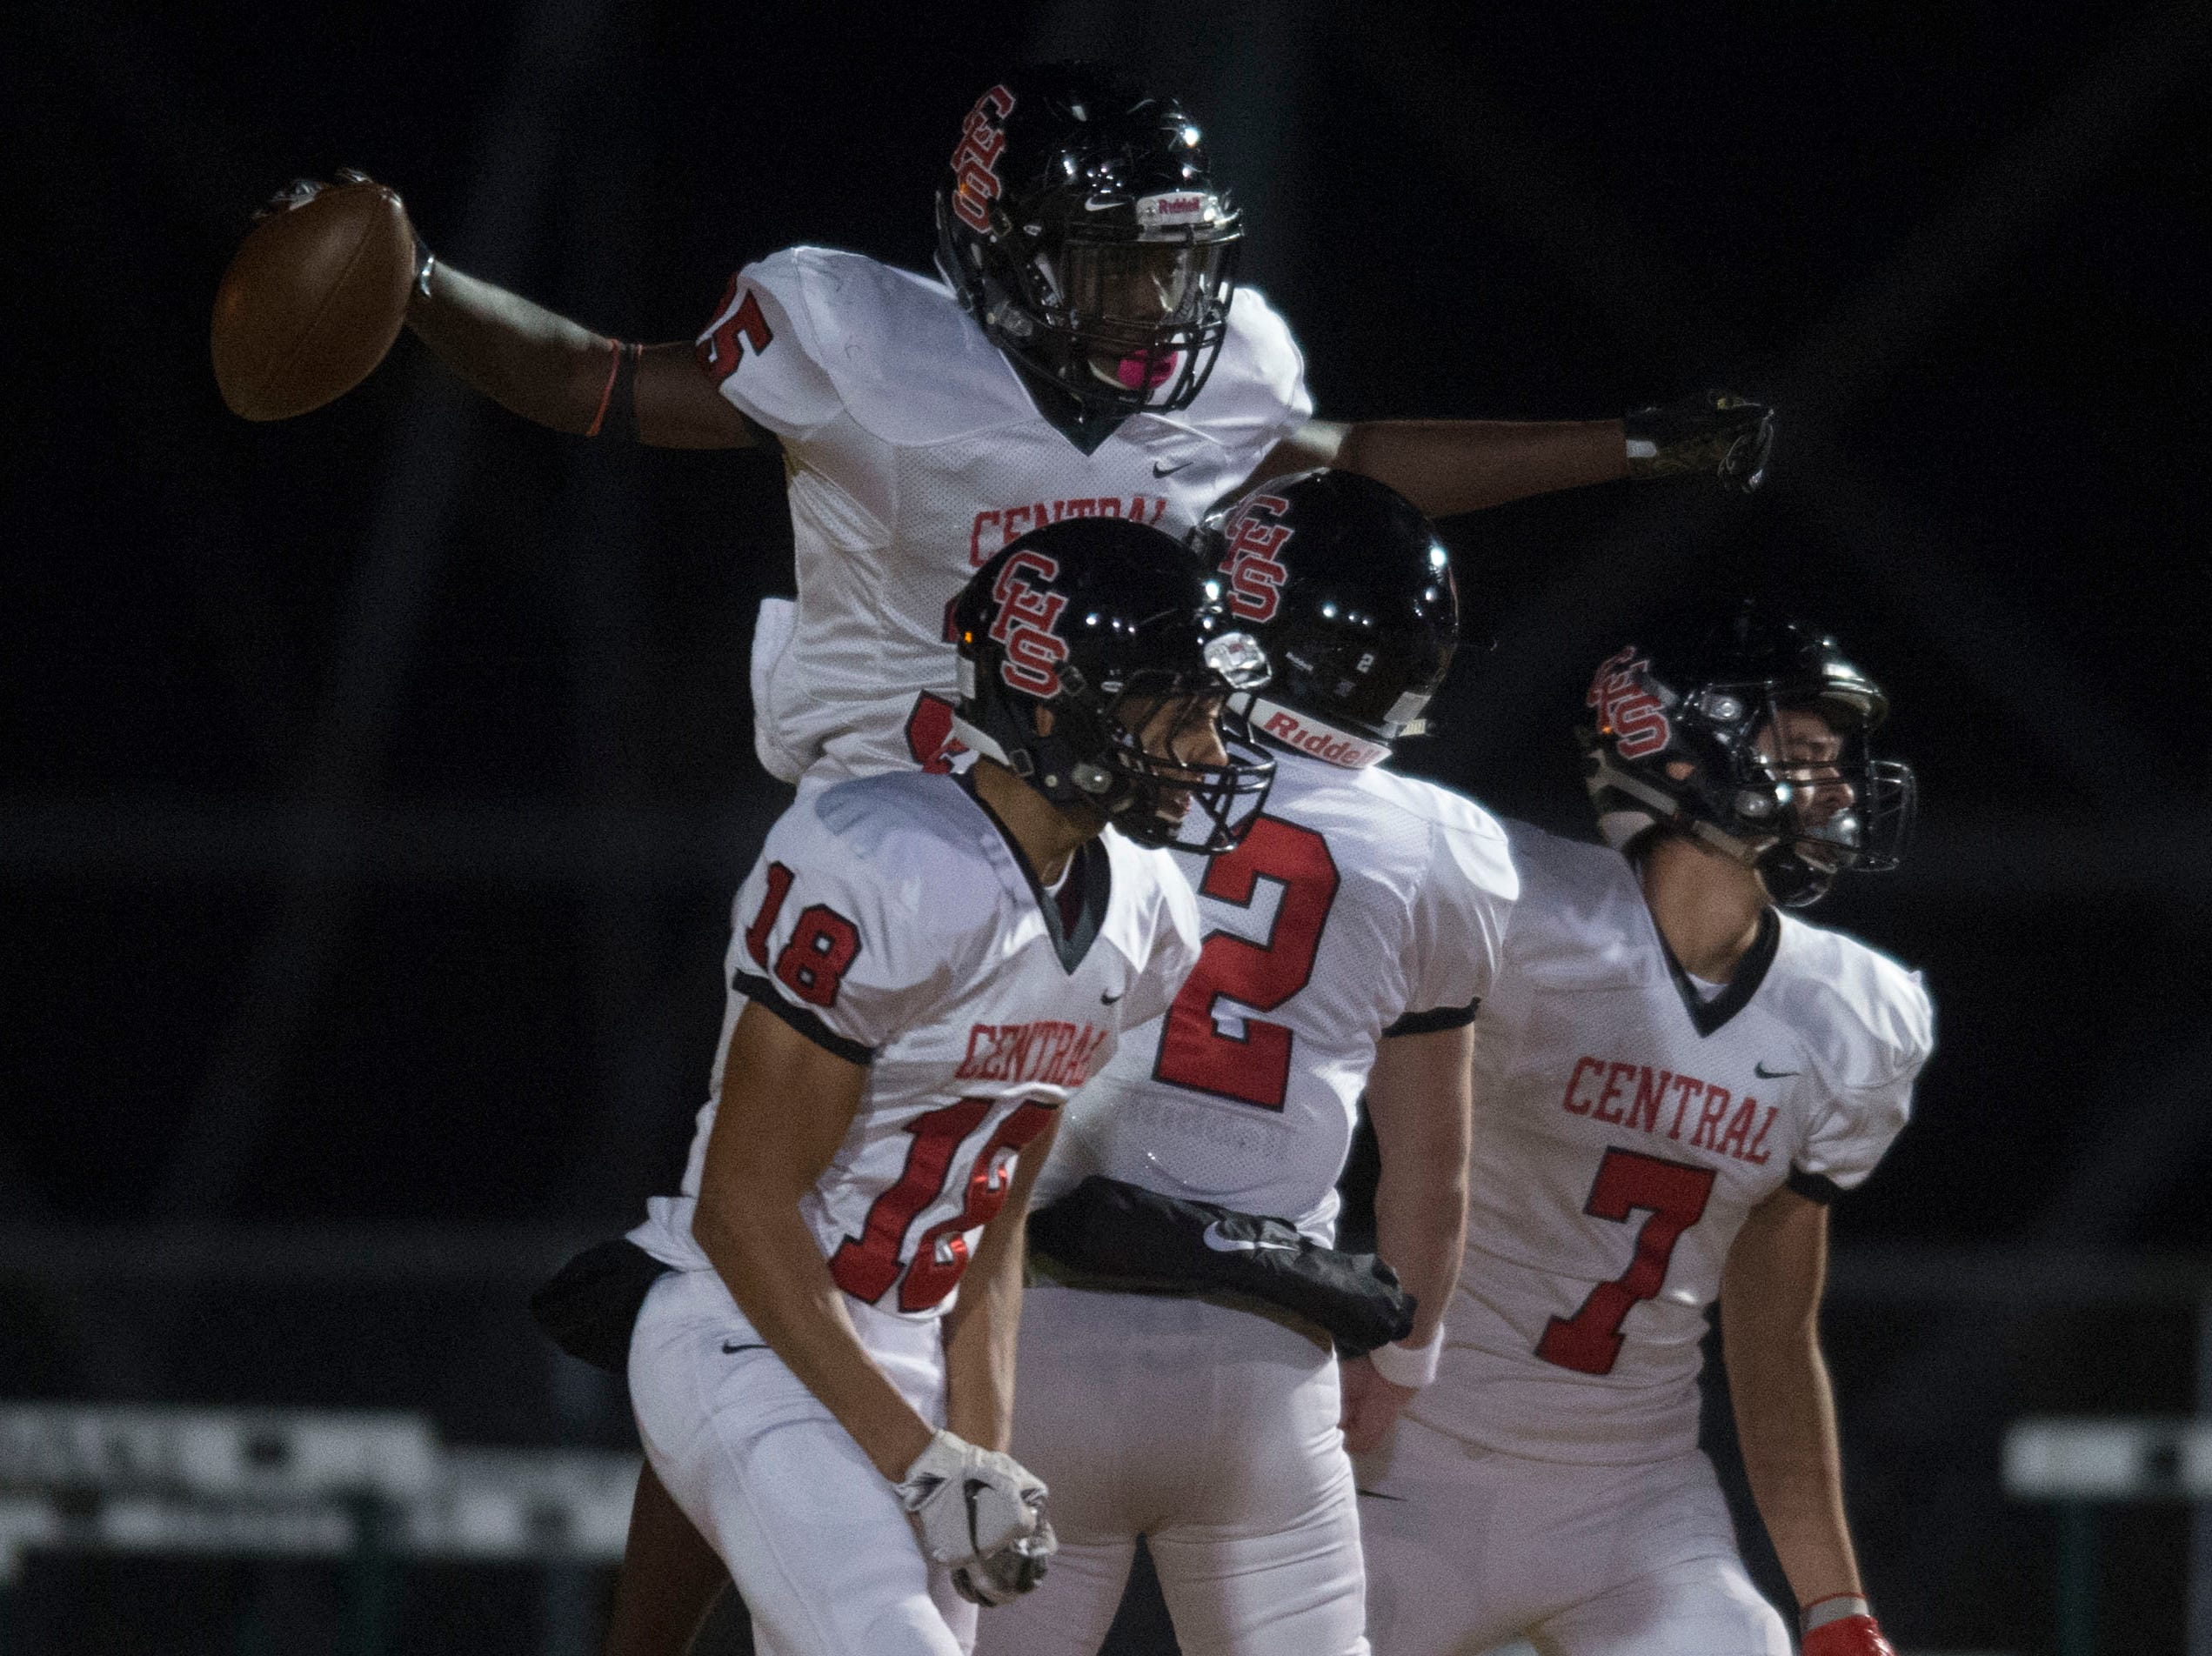 Central's Jason Merritts (35) celebrates after his touchdown, the first of the game, during a Class 5A semifinal game between Central at Catholic Friday, Nov. 23, 2018. Central defeated Catholic 24-19.